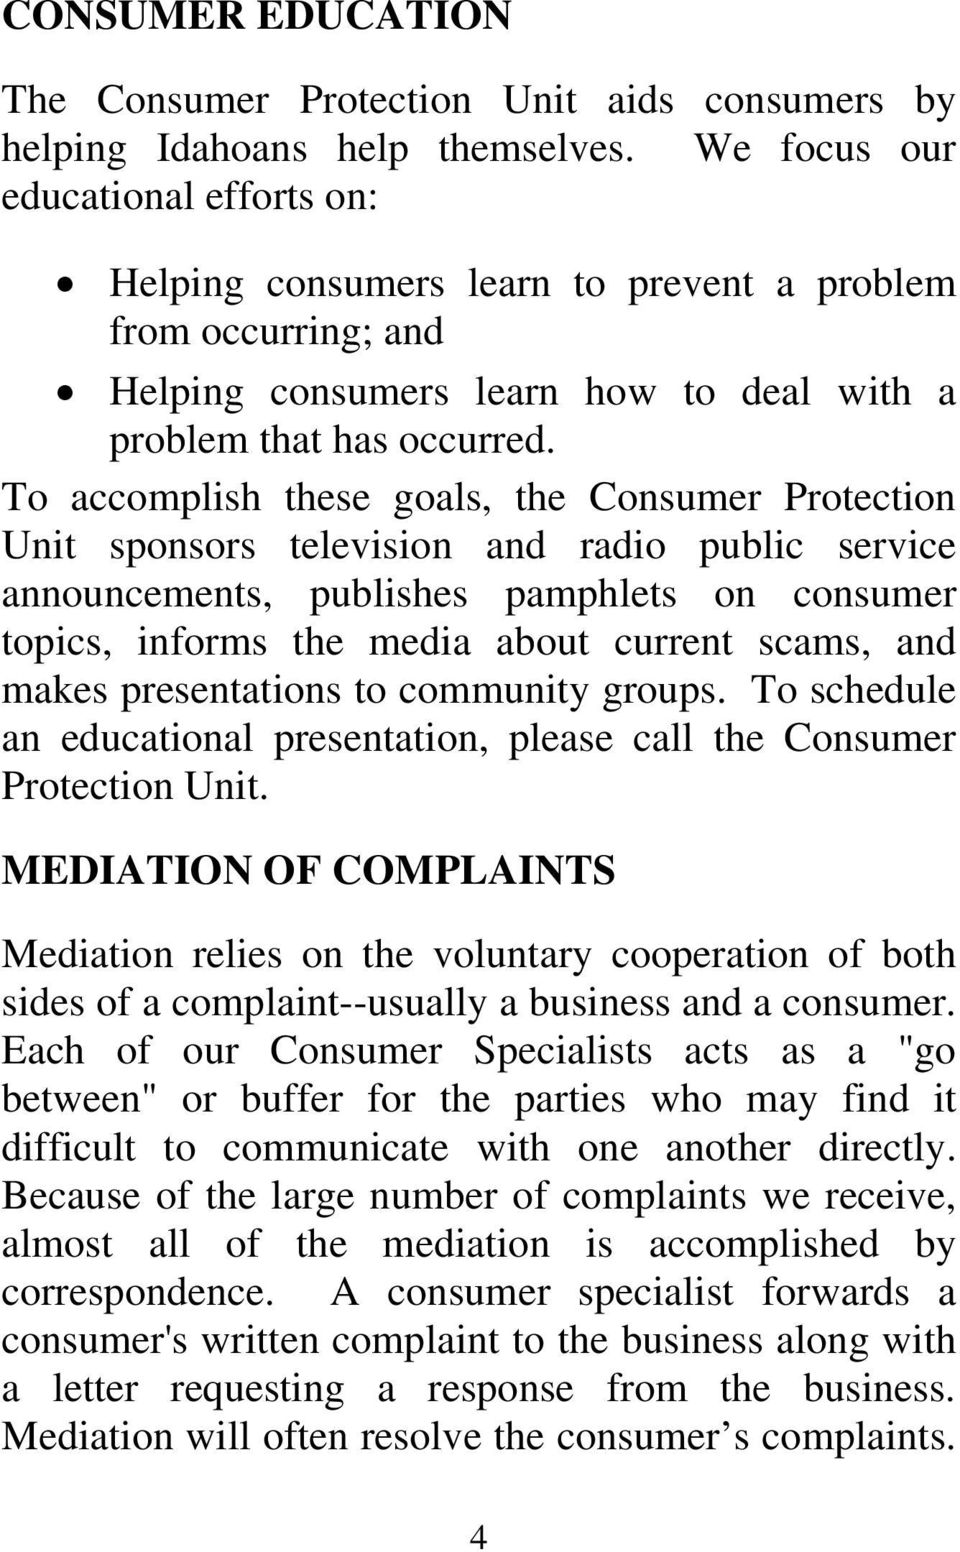 To accomplish these goals, the Consumer Protection Unit sponsors television and radio public service announcements, publishes pamphlets on consumer topics, informs the media about current scams, and